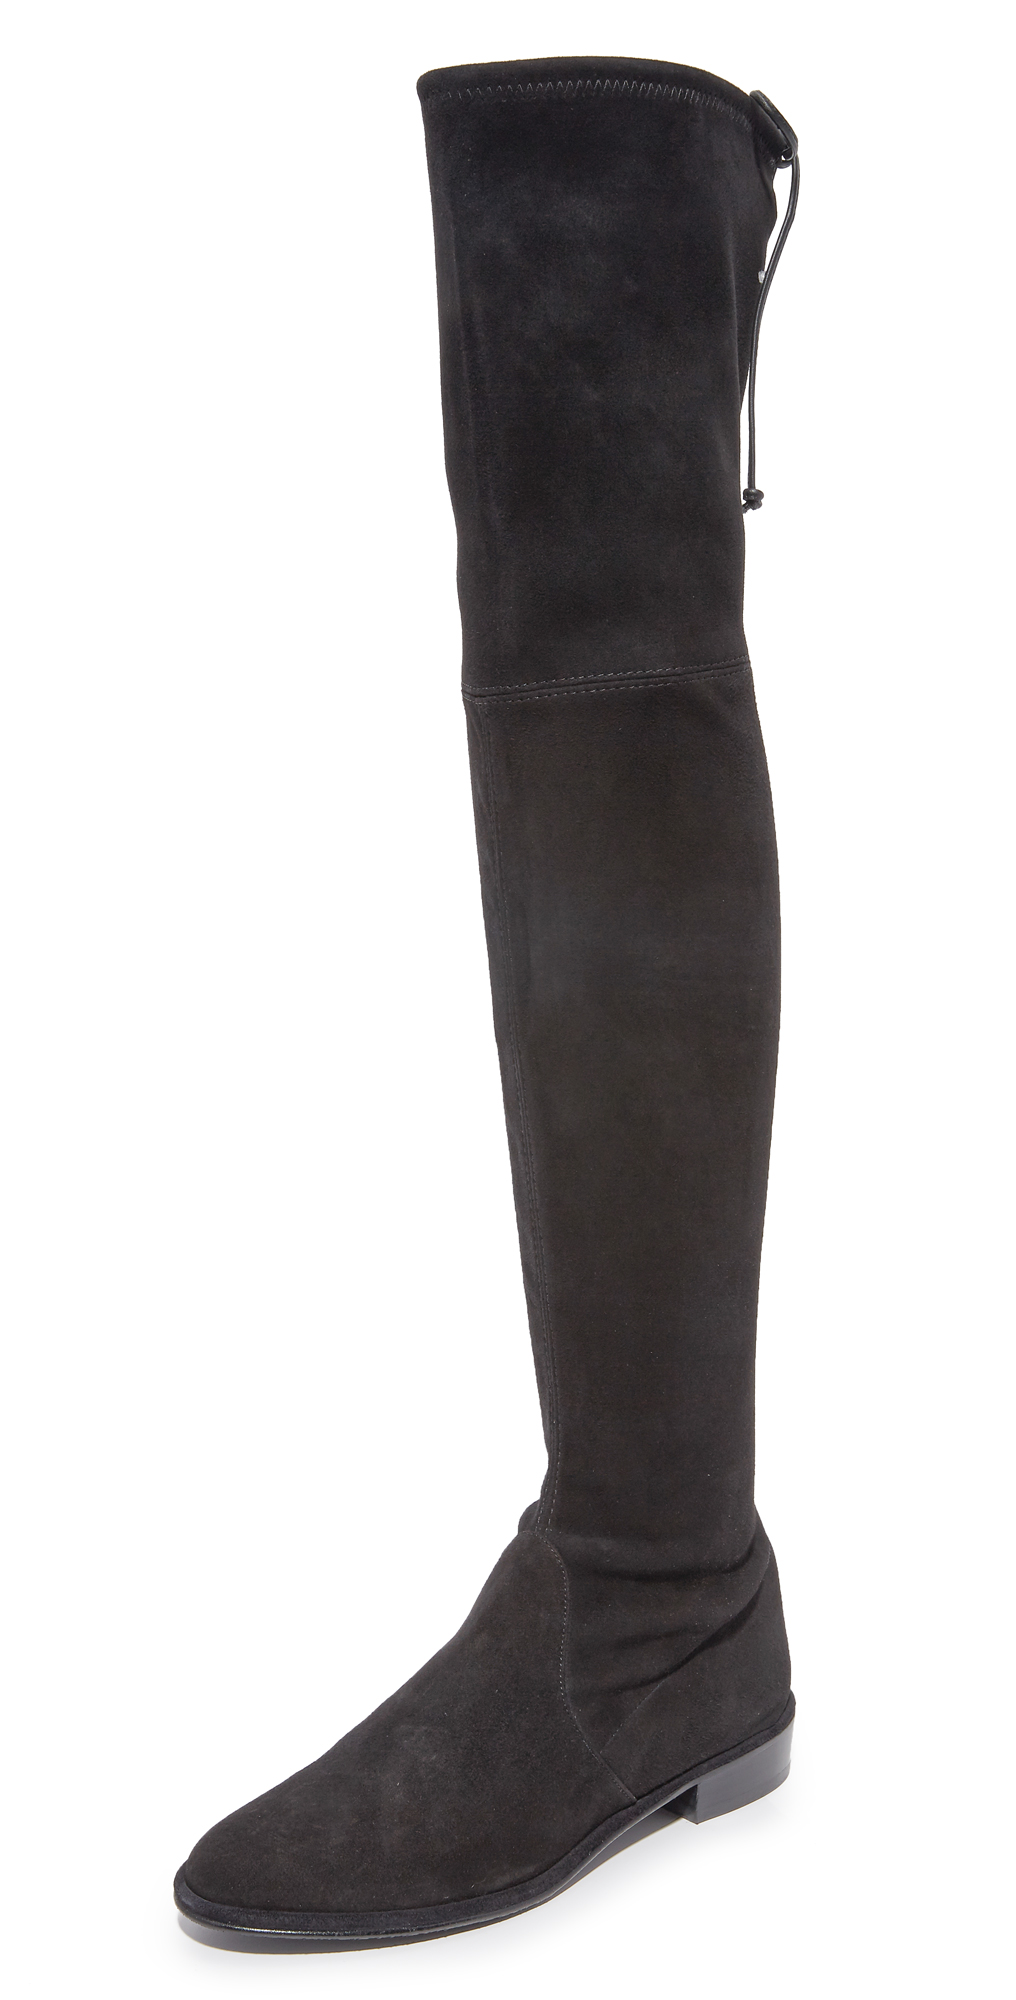 Lowland Over the Knee Boots Stuart Weitzman